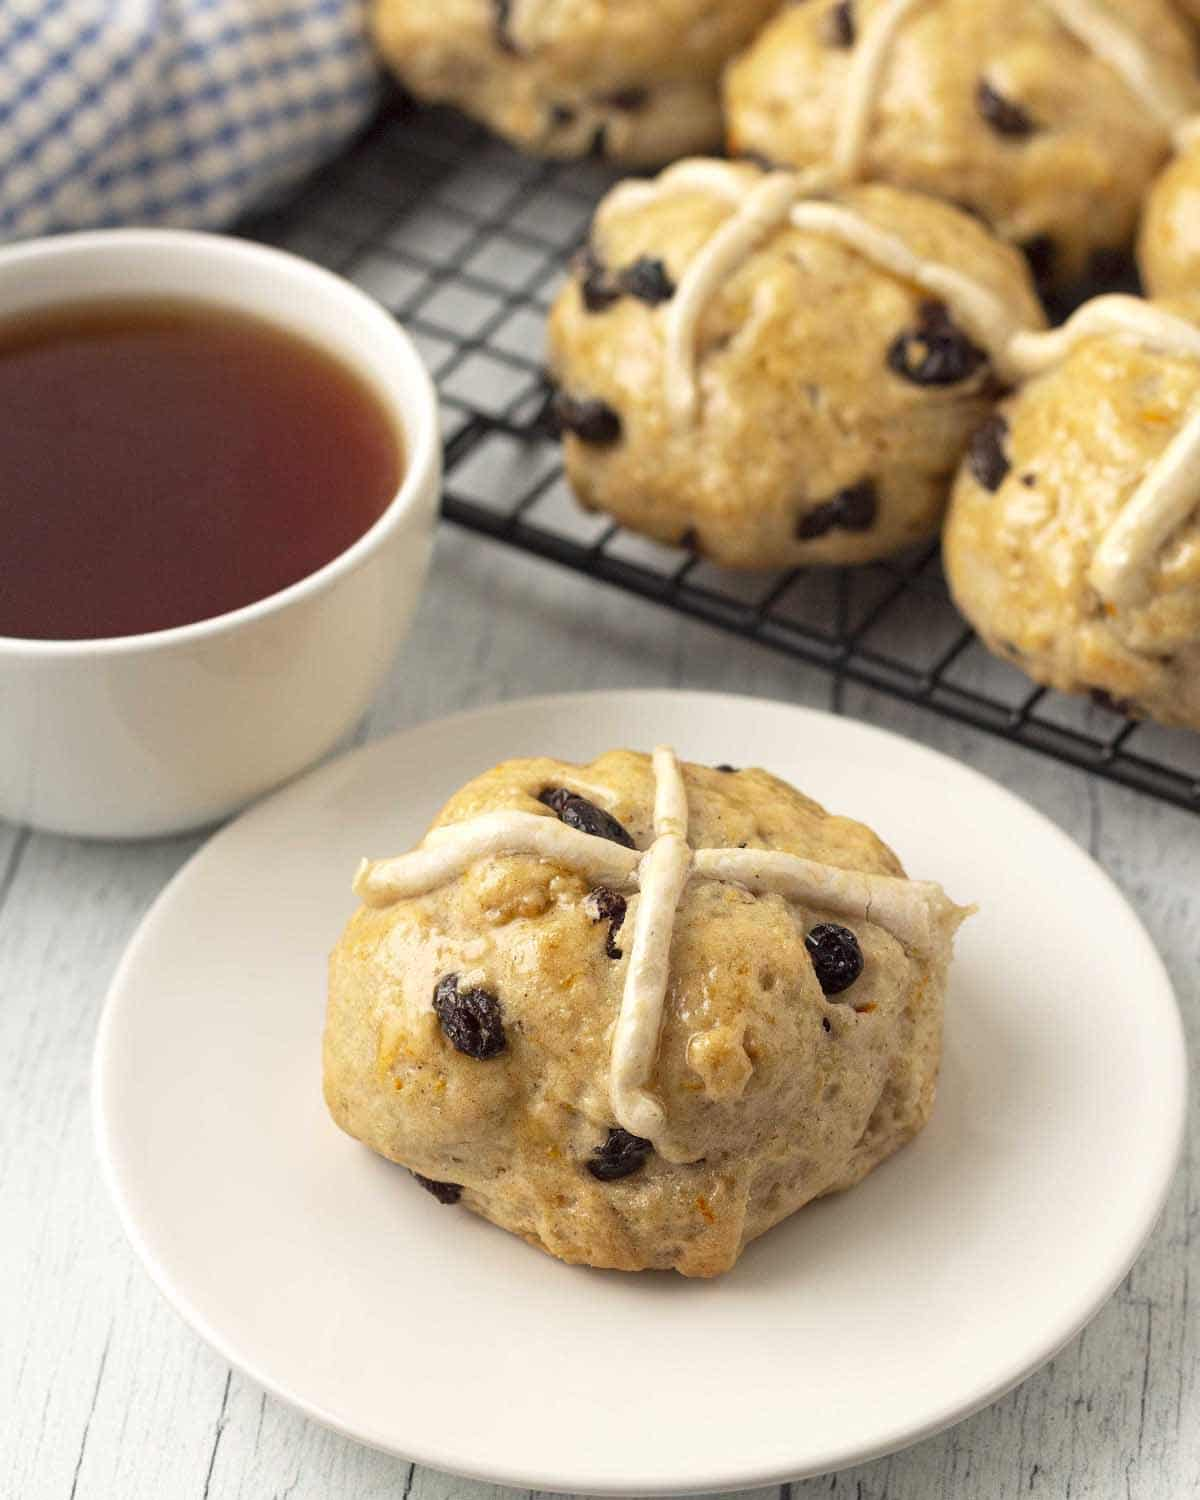 A hot cross bun on a white plate, more buns sit behind on a cooling rack, a cup of tea sits to the left of the plate.